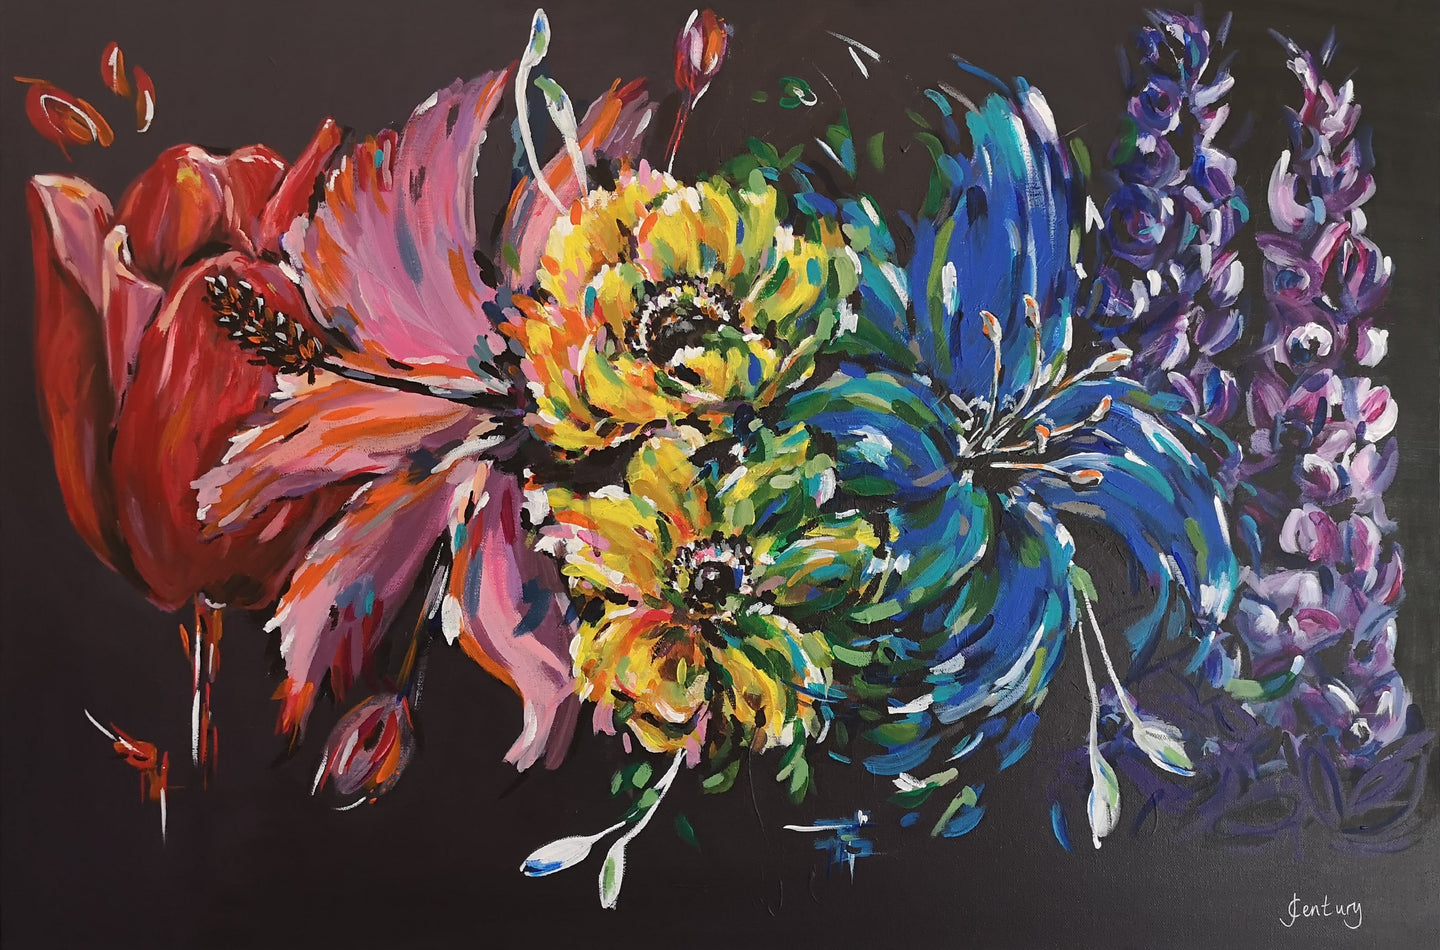 Rainbow flower painting on contrasting black background by Judy Century Art. Vibrant, colourful acrylics painting.